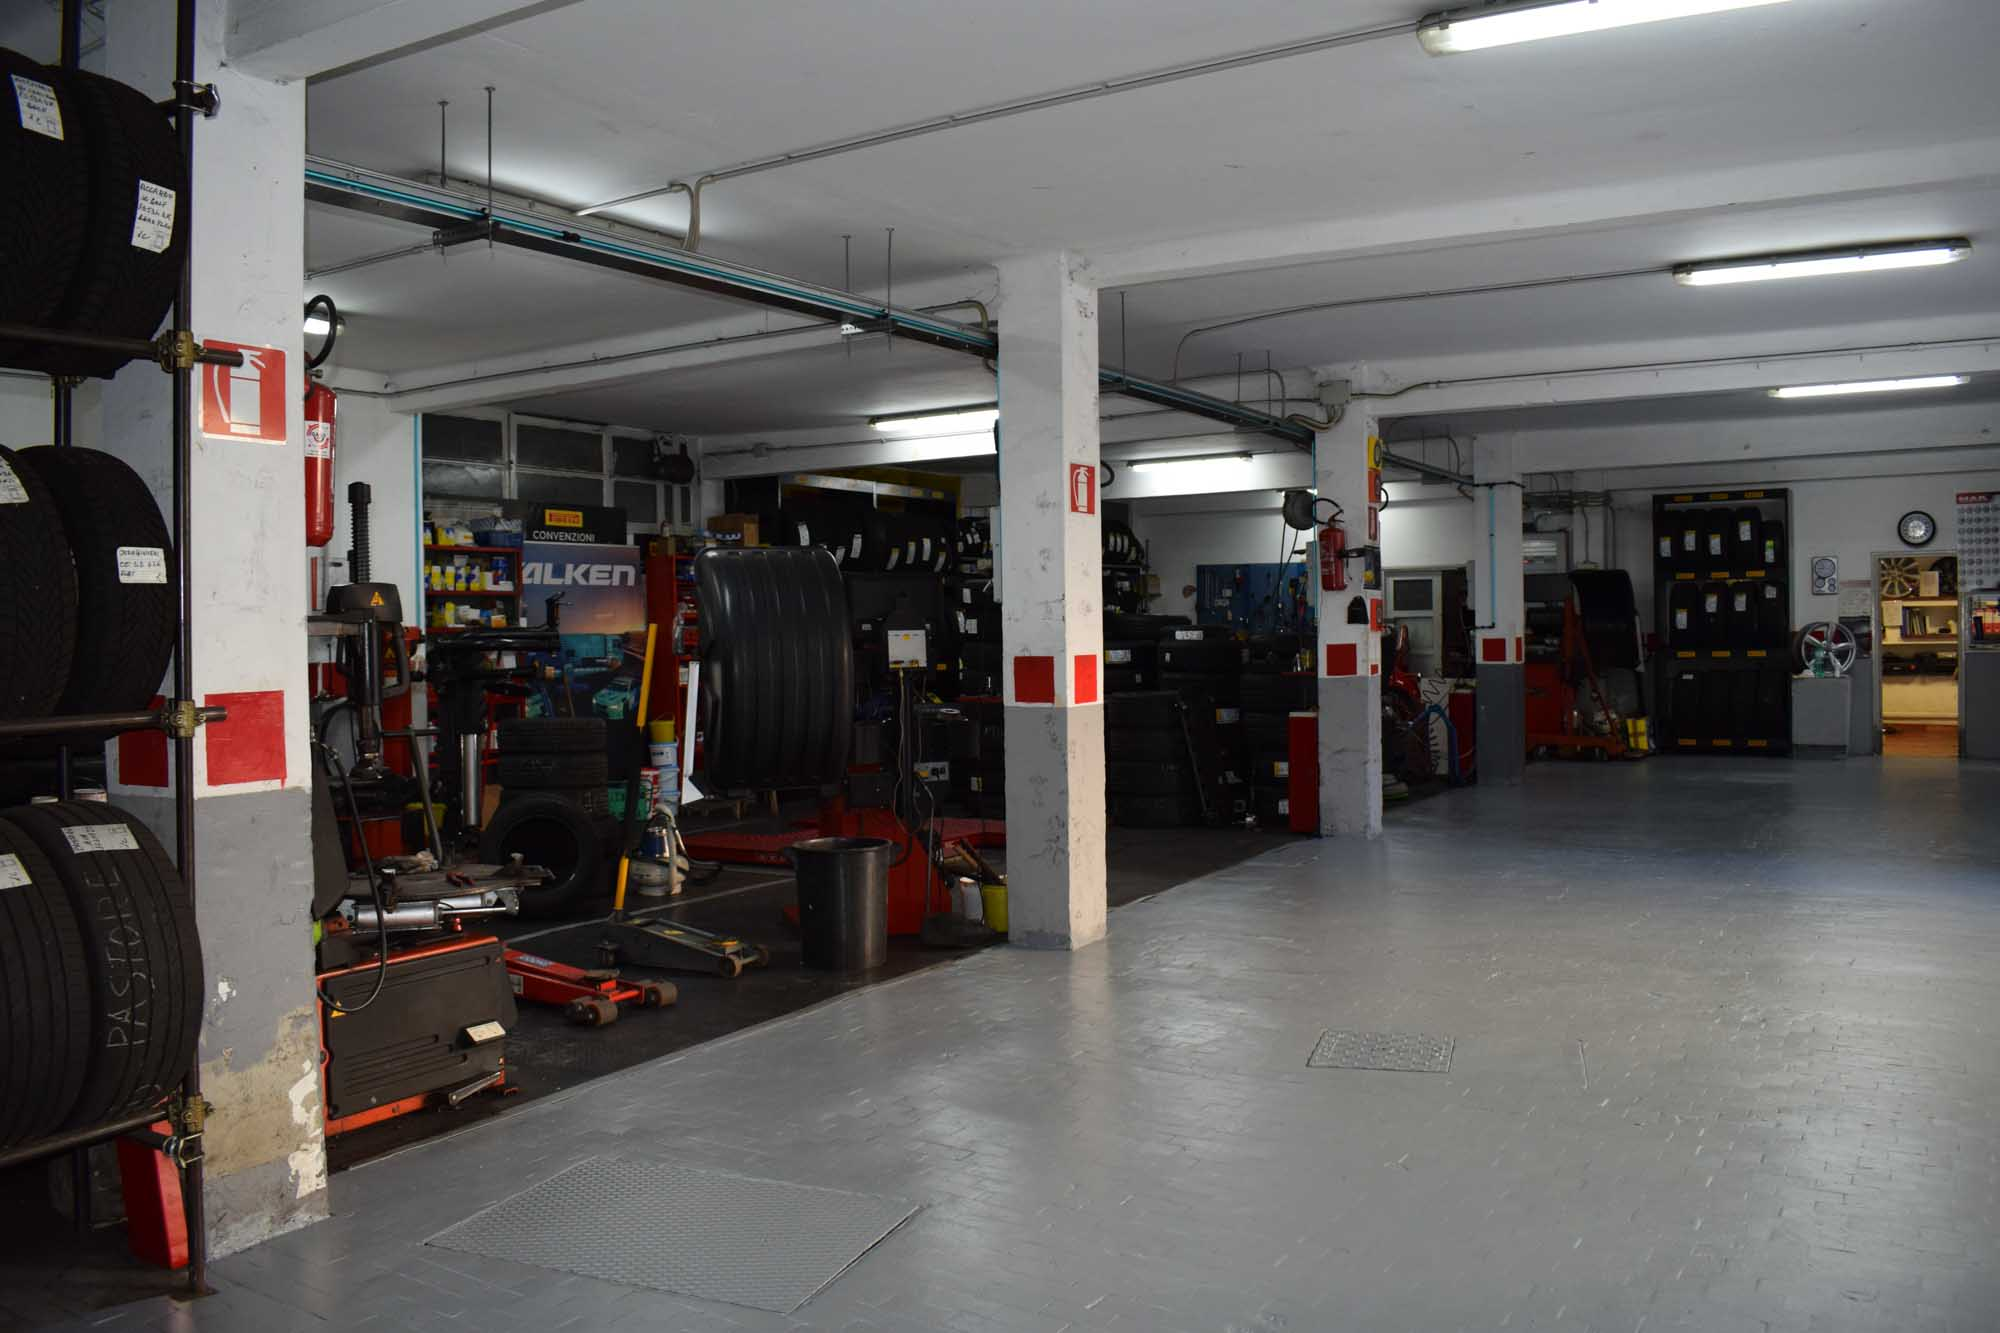 giesse-gomme-officina-pneumatici-13